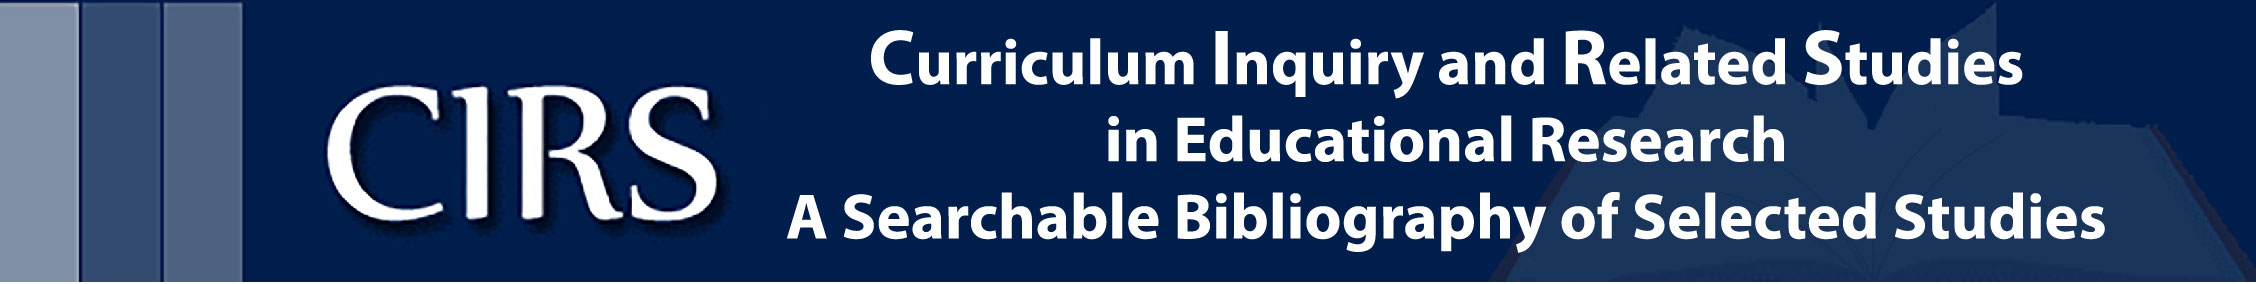 CIRS: Curriculum Inquiry and Related Studies from Educational Research: A Searchable Bibliography of Selected Studies